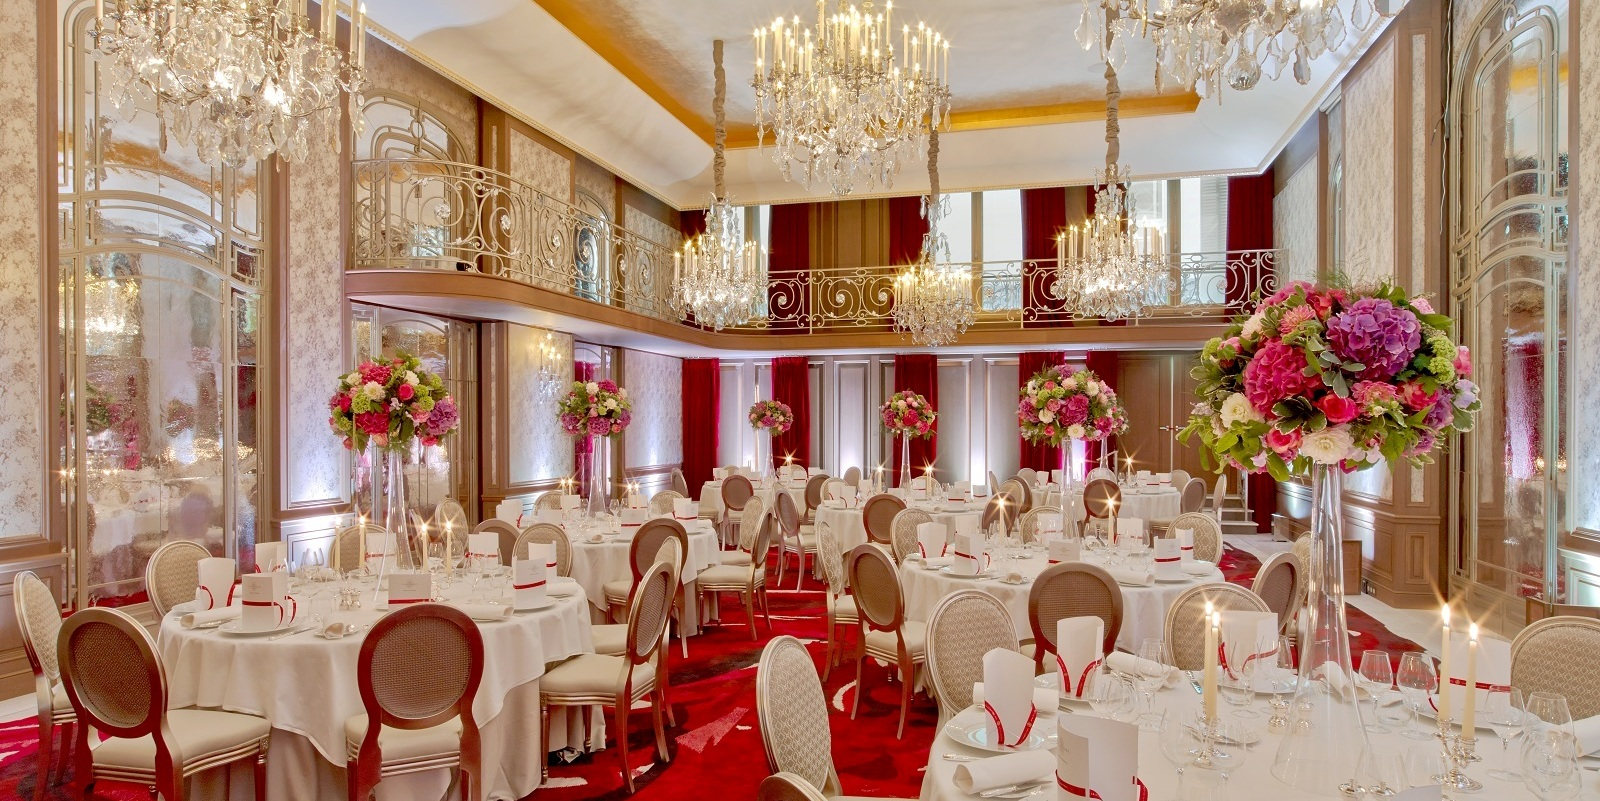 haute-couture-venue-at-hotel-plaza-athenee.jpg